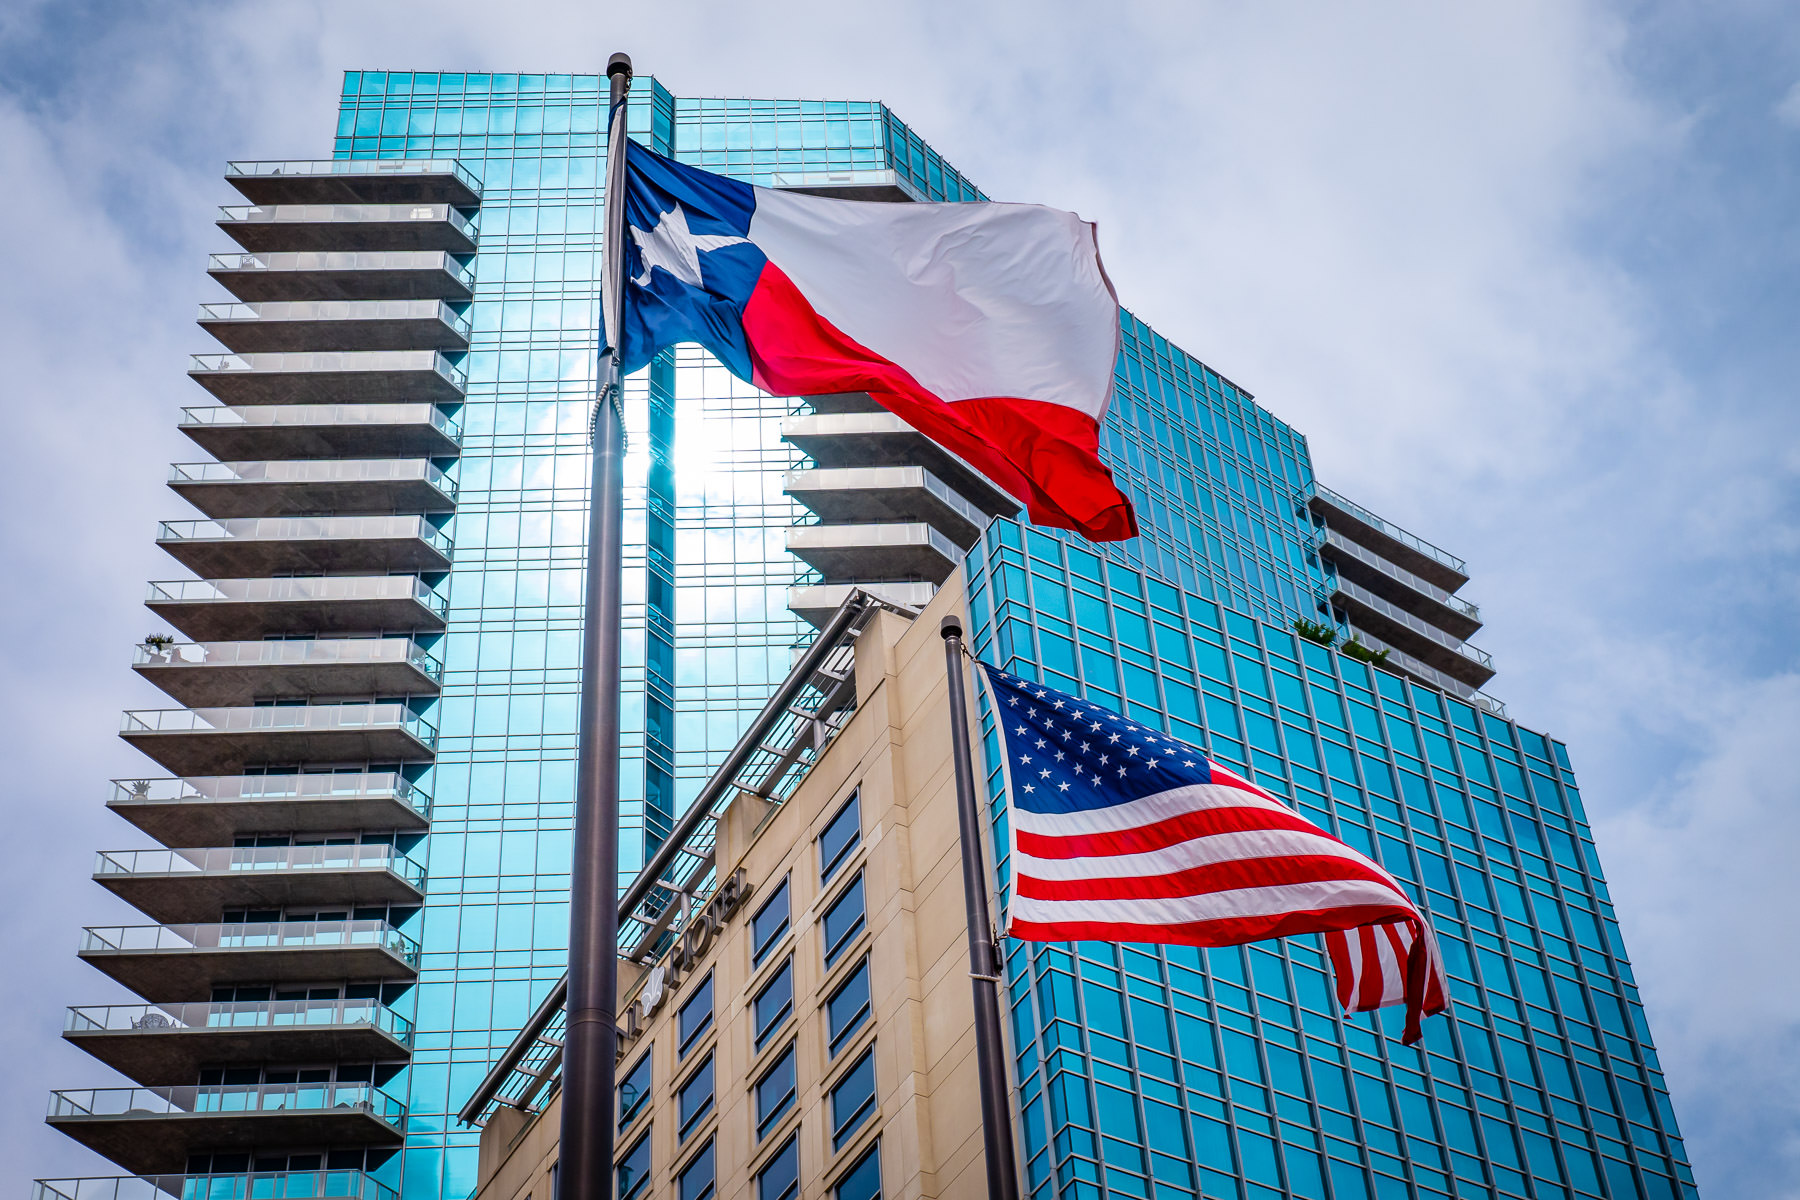 The Omni Fort Worth Hotel rises above the Texas Flag and the United States Flag.